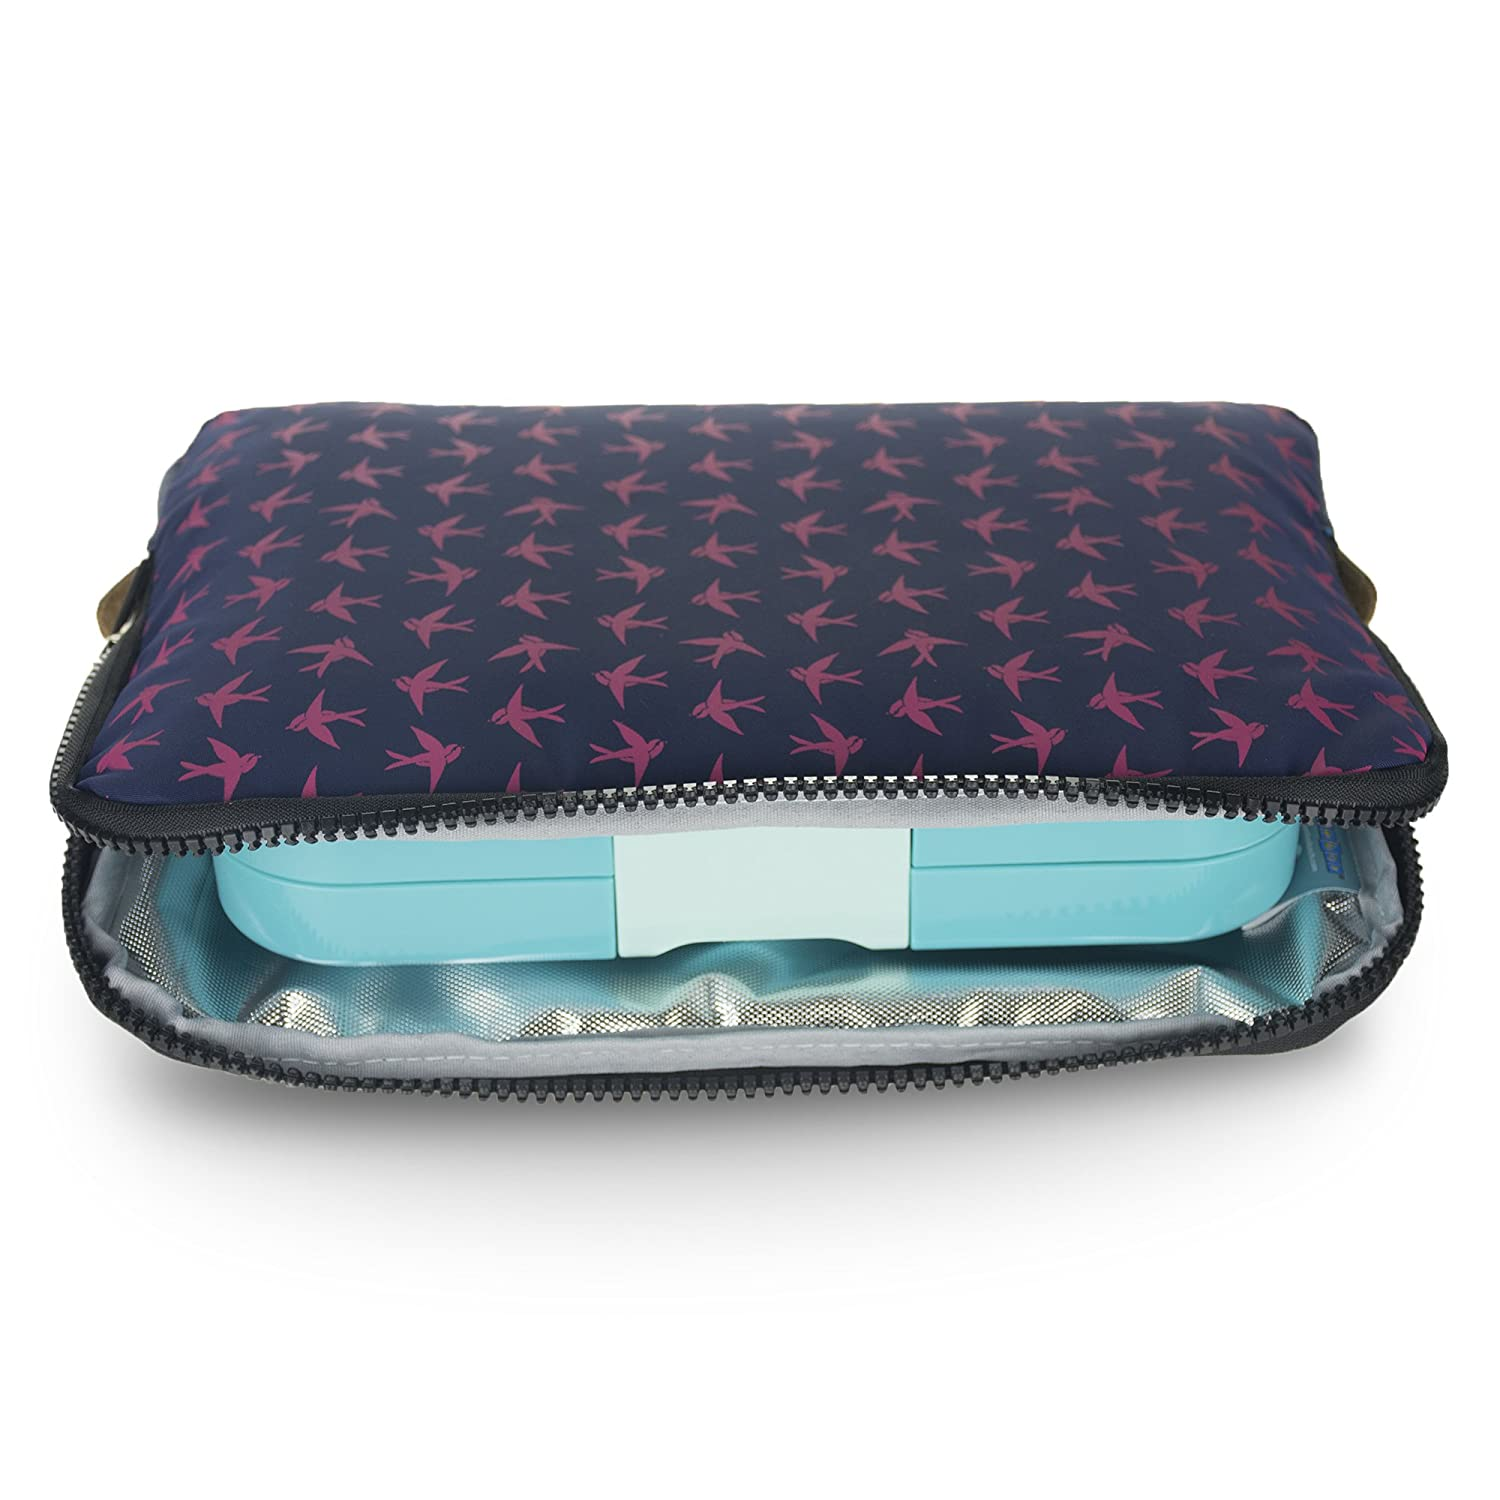 YUMBOX Poche - Insulated Sleeve Lunch Box (Navy with all over print) COMIN18JU057719